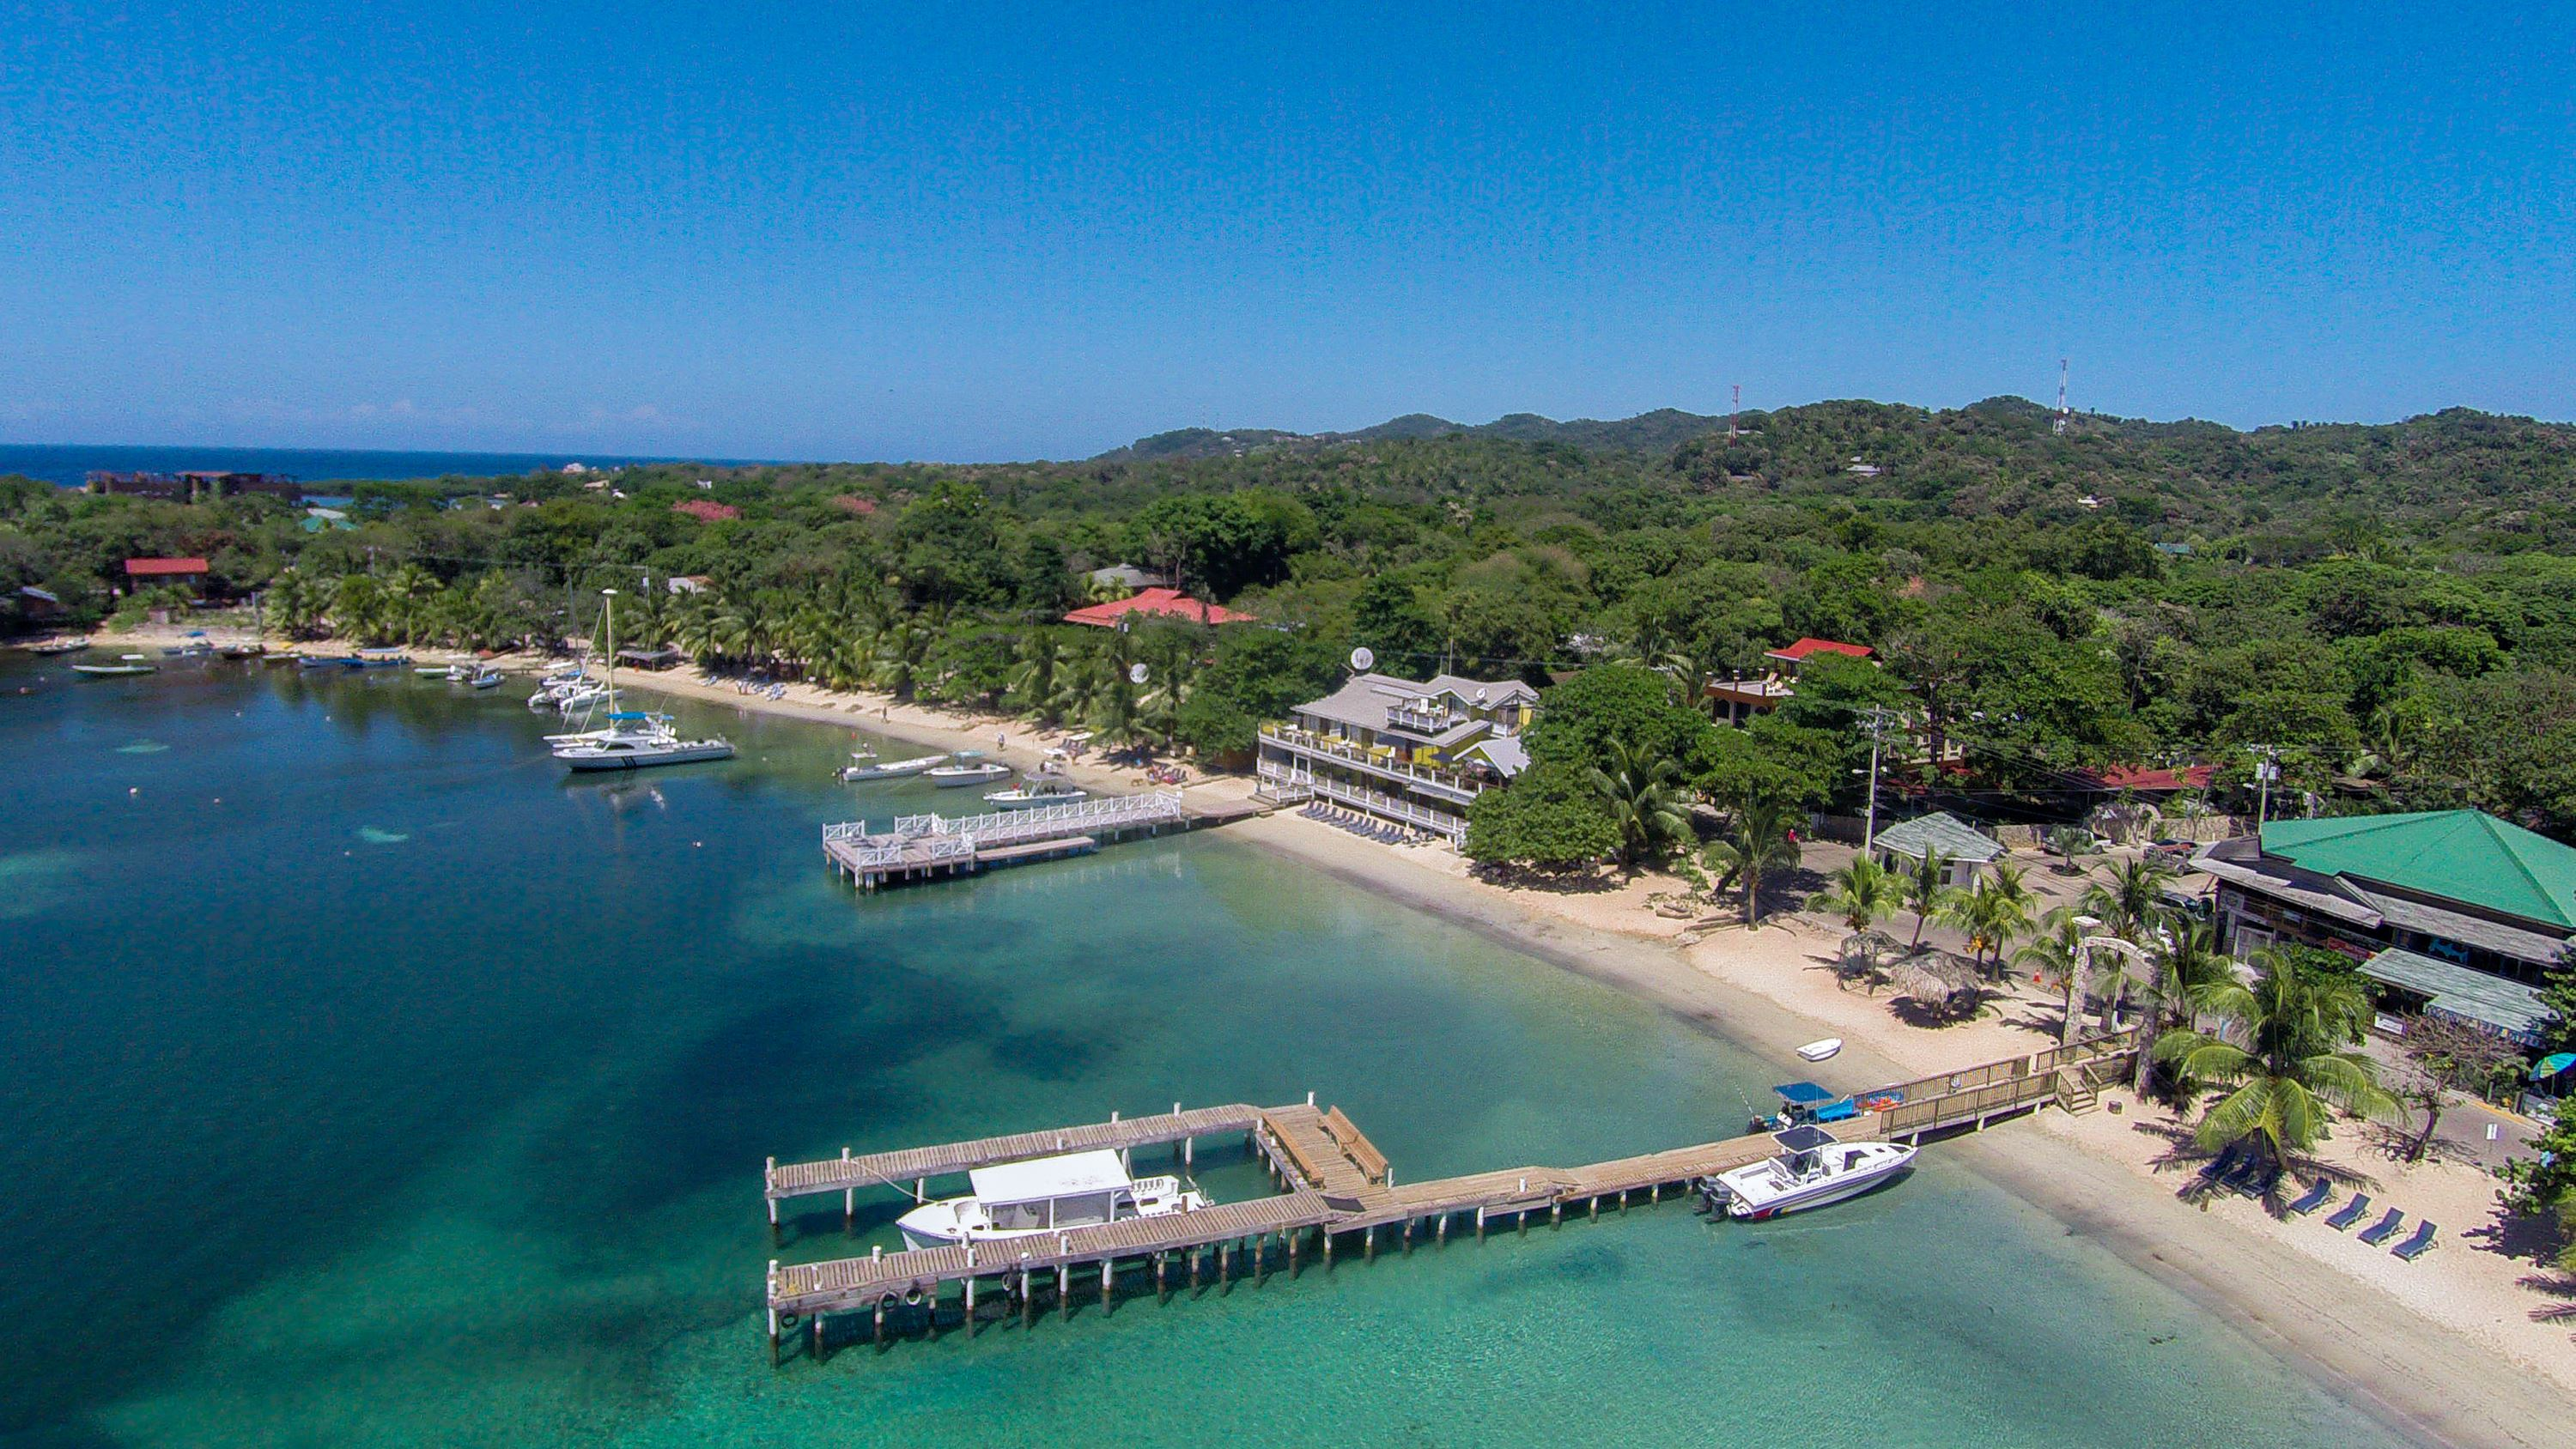 Exploring the West side of Roatan Bay Island